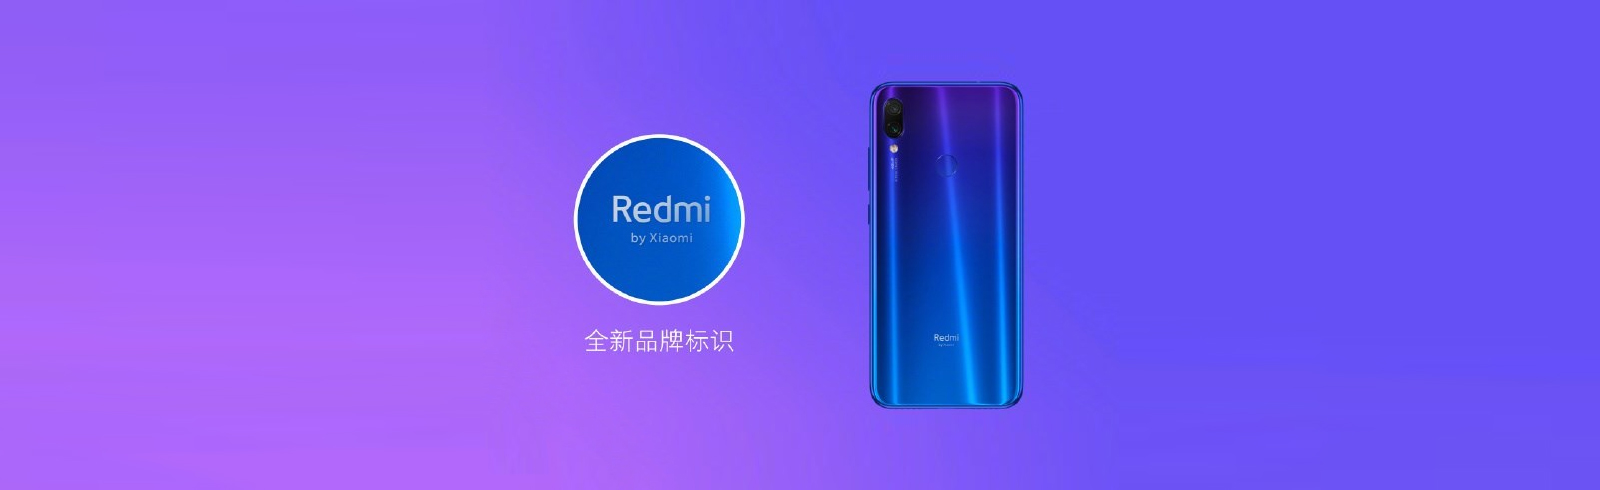 Redmi is officially a separate Xiaomi brand, Redmi Note 7 is announced